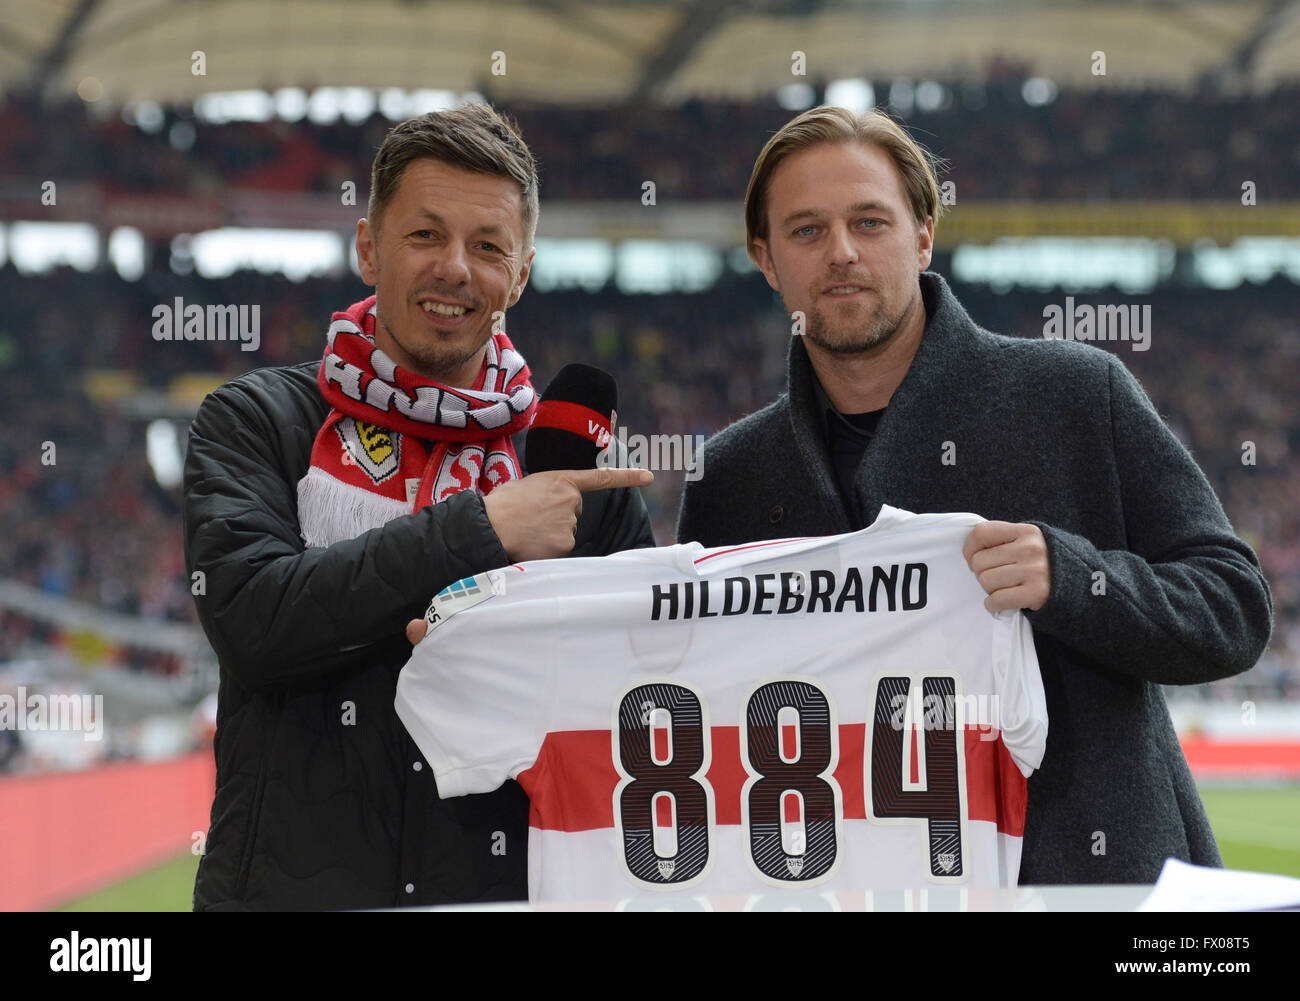 vier l and former vfb goalkeeper timo hildebrand hold up a jersey ahead of the german bundesliga soccer match between vfb stuttgart and bayern